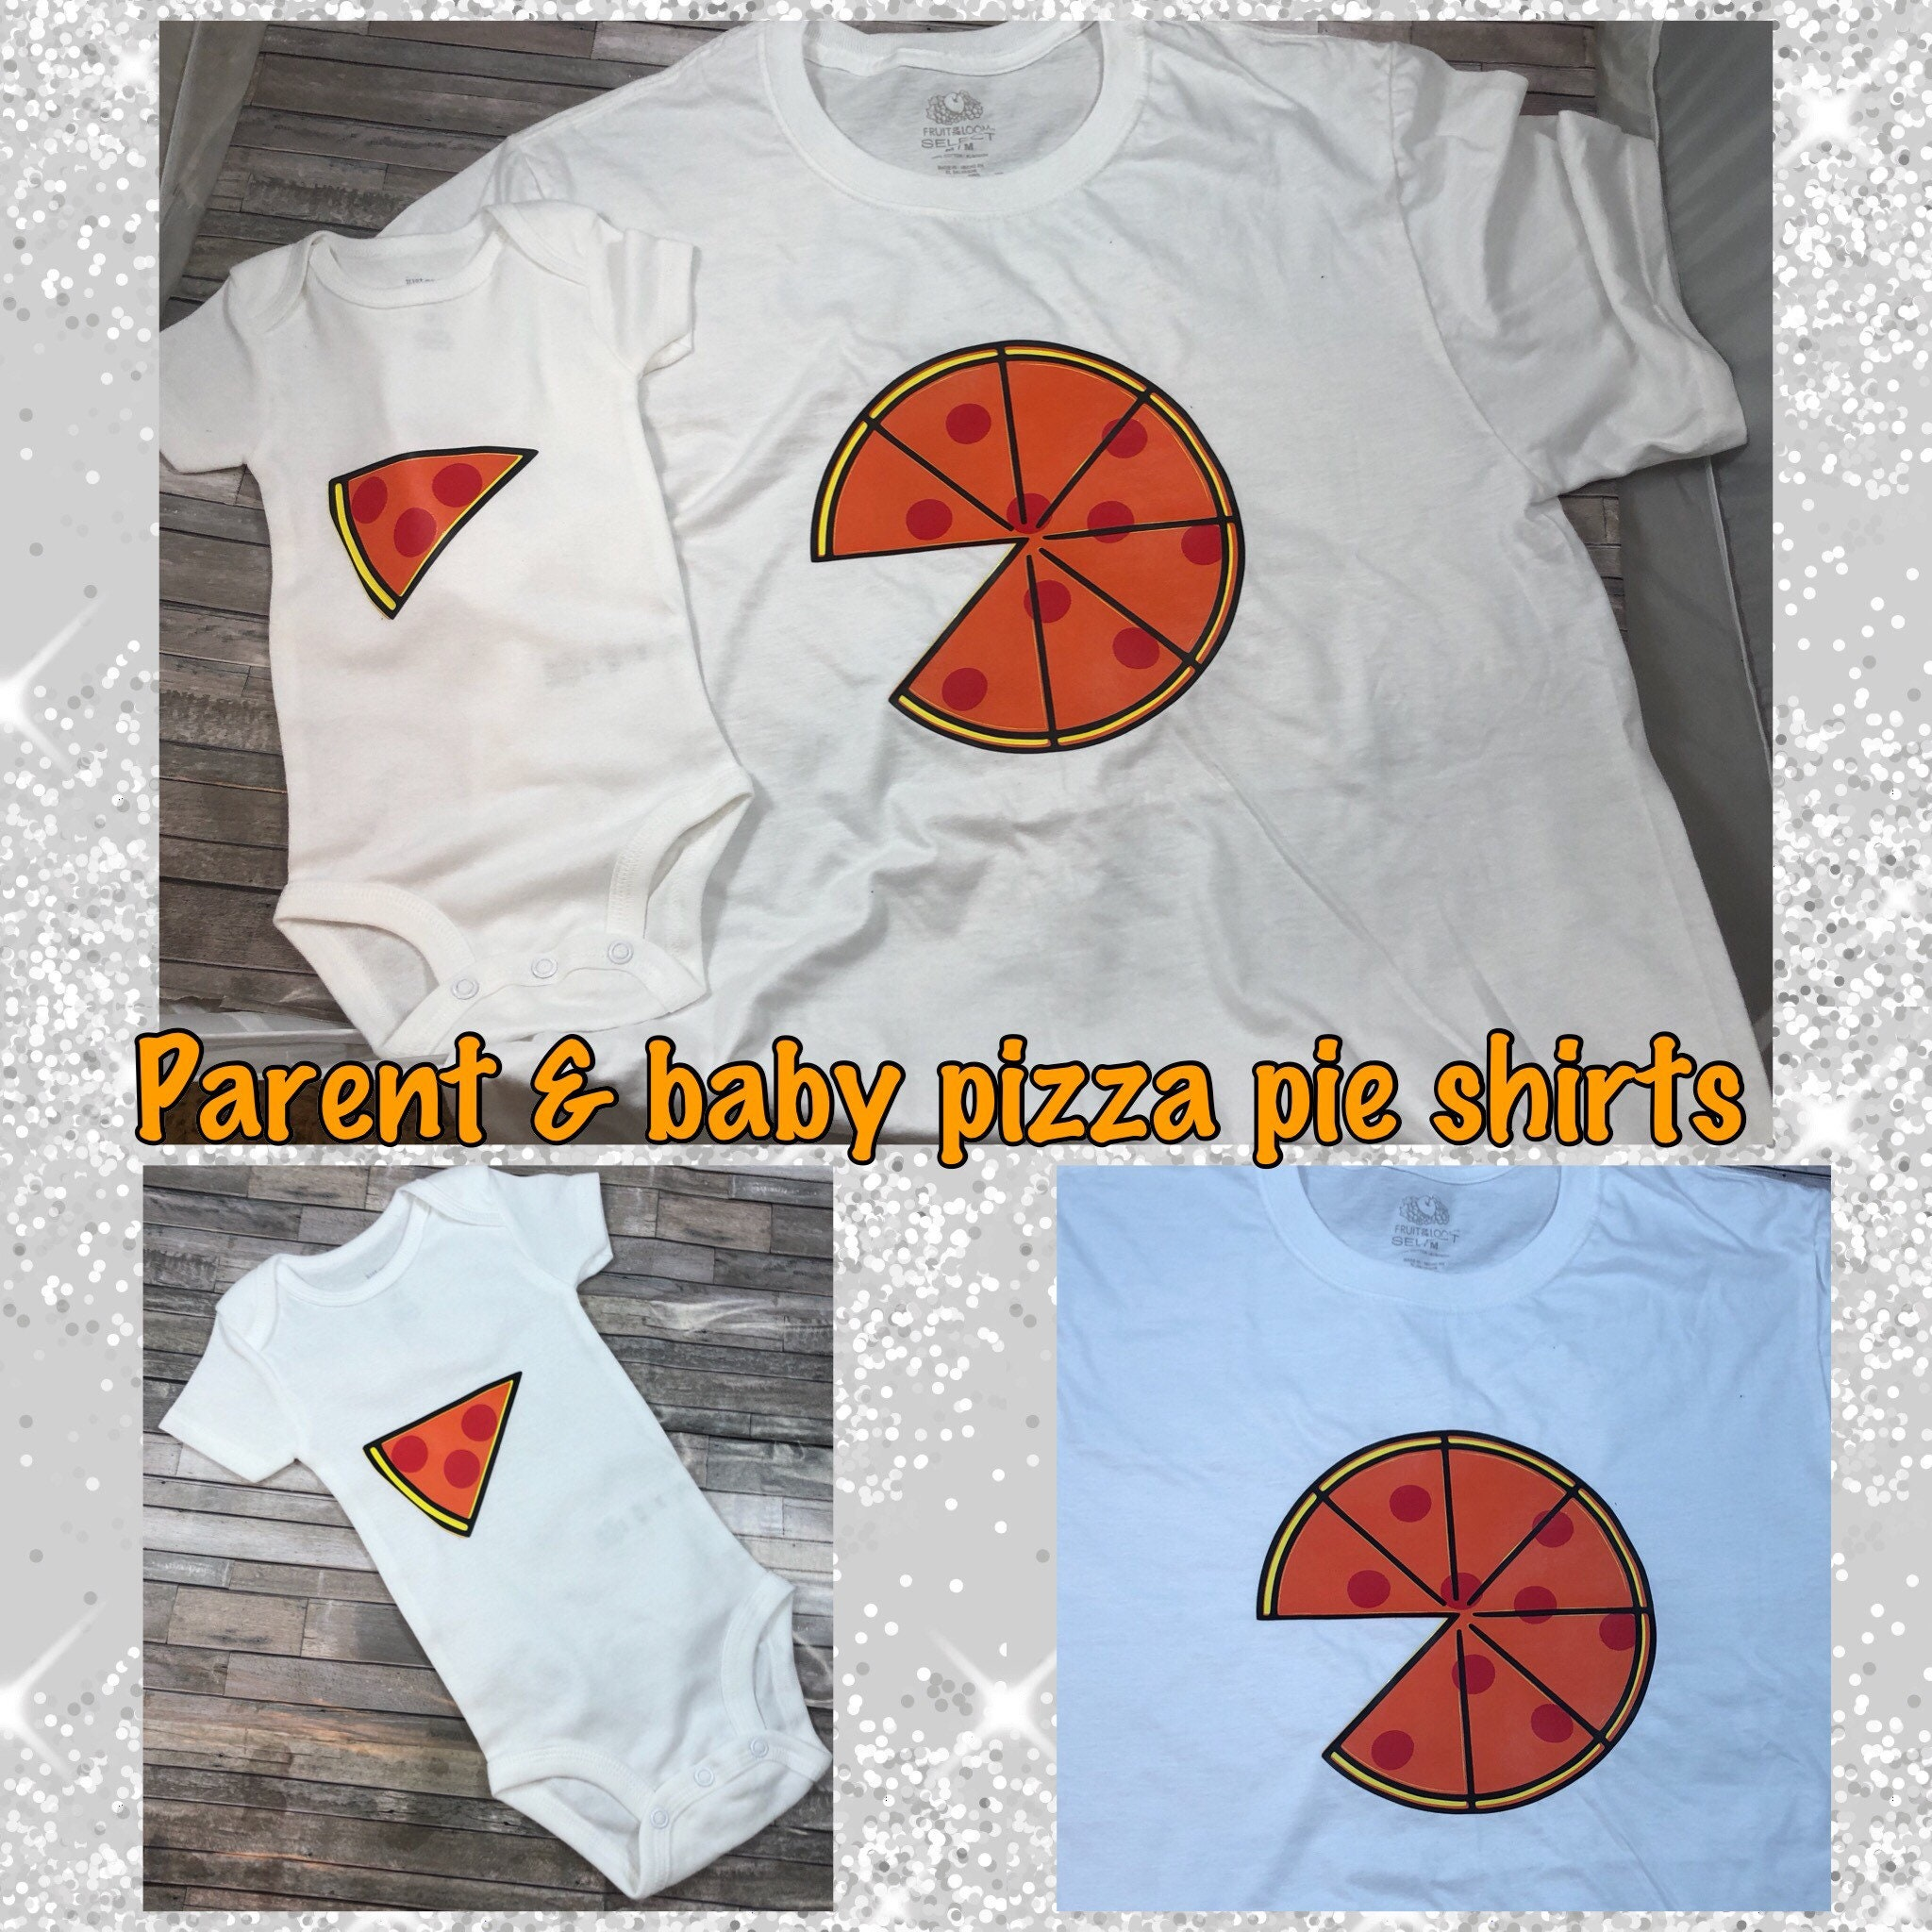 cbc34dc65 Parent & baby pizza shirts, mommy and me, daddy and baby, parent and child,  any color, any toppings, 2 shirt set, pepperoni pizza shirt